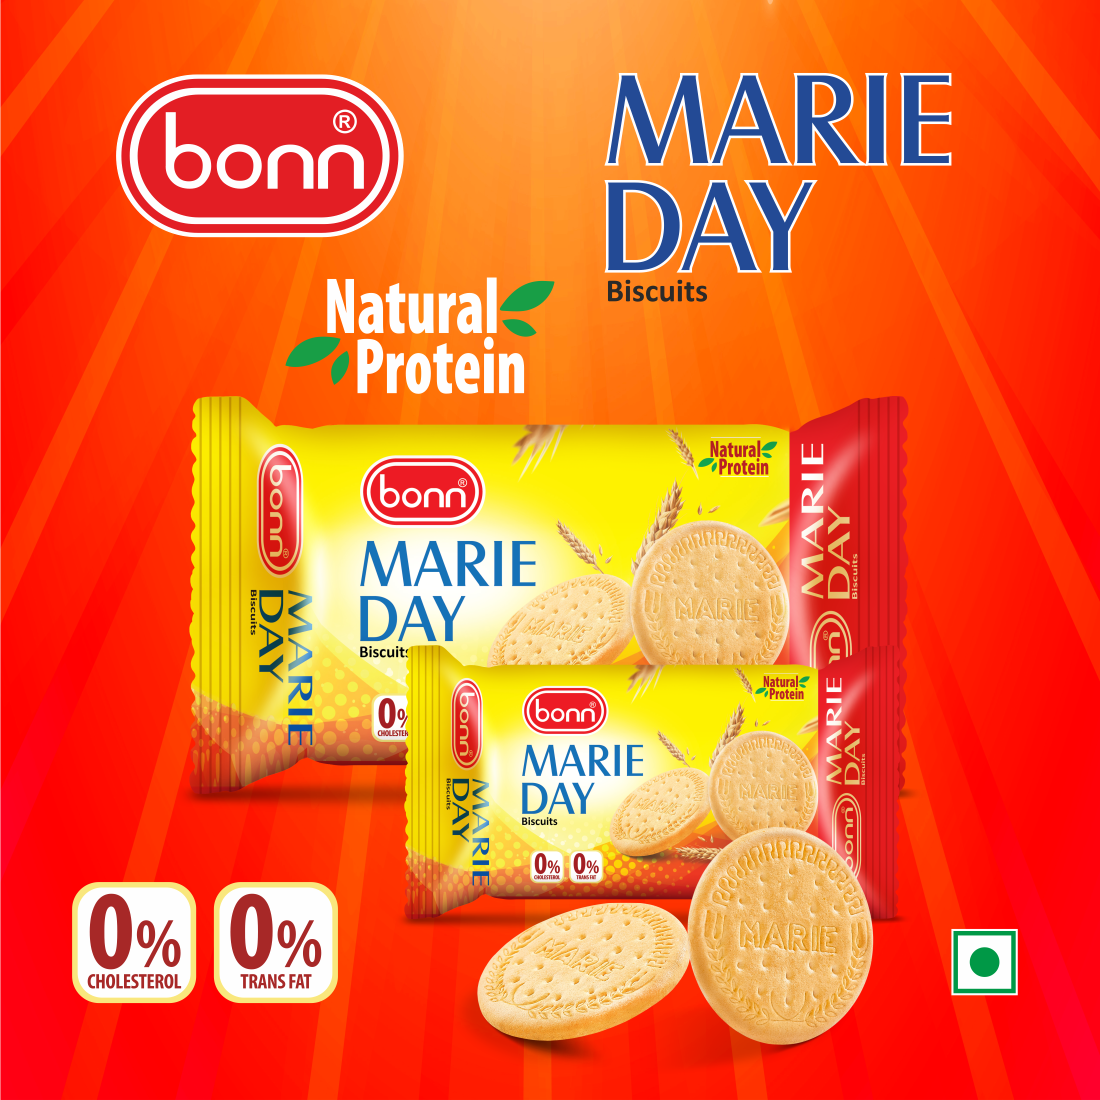 Bonn Marie Day Biscuits, Cholestrol Free, TransFat Free, Natural Protein, 80 g Pack